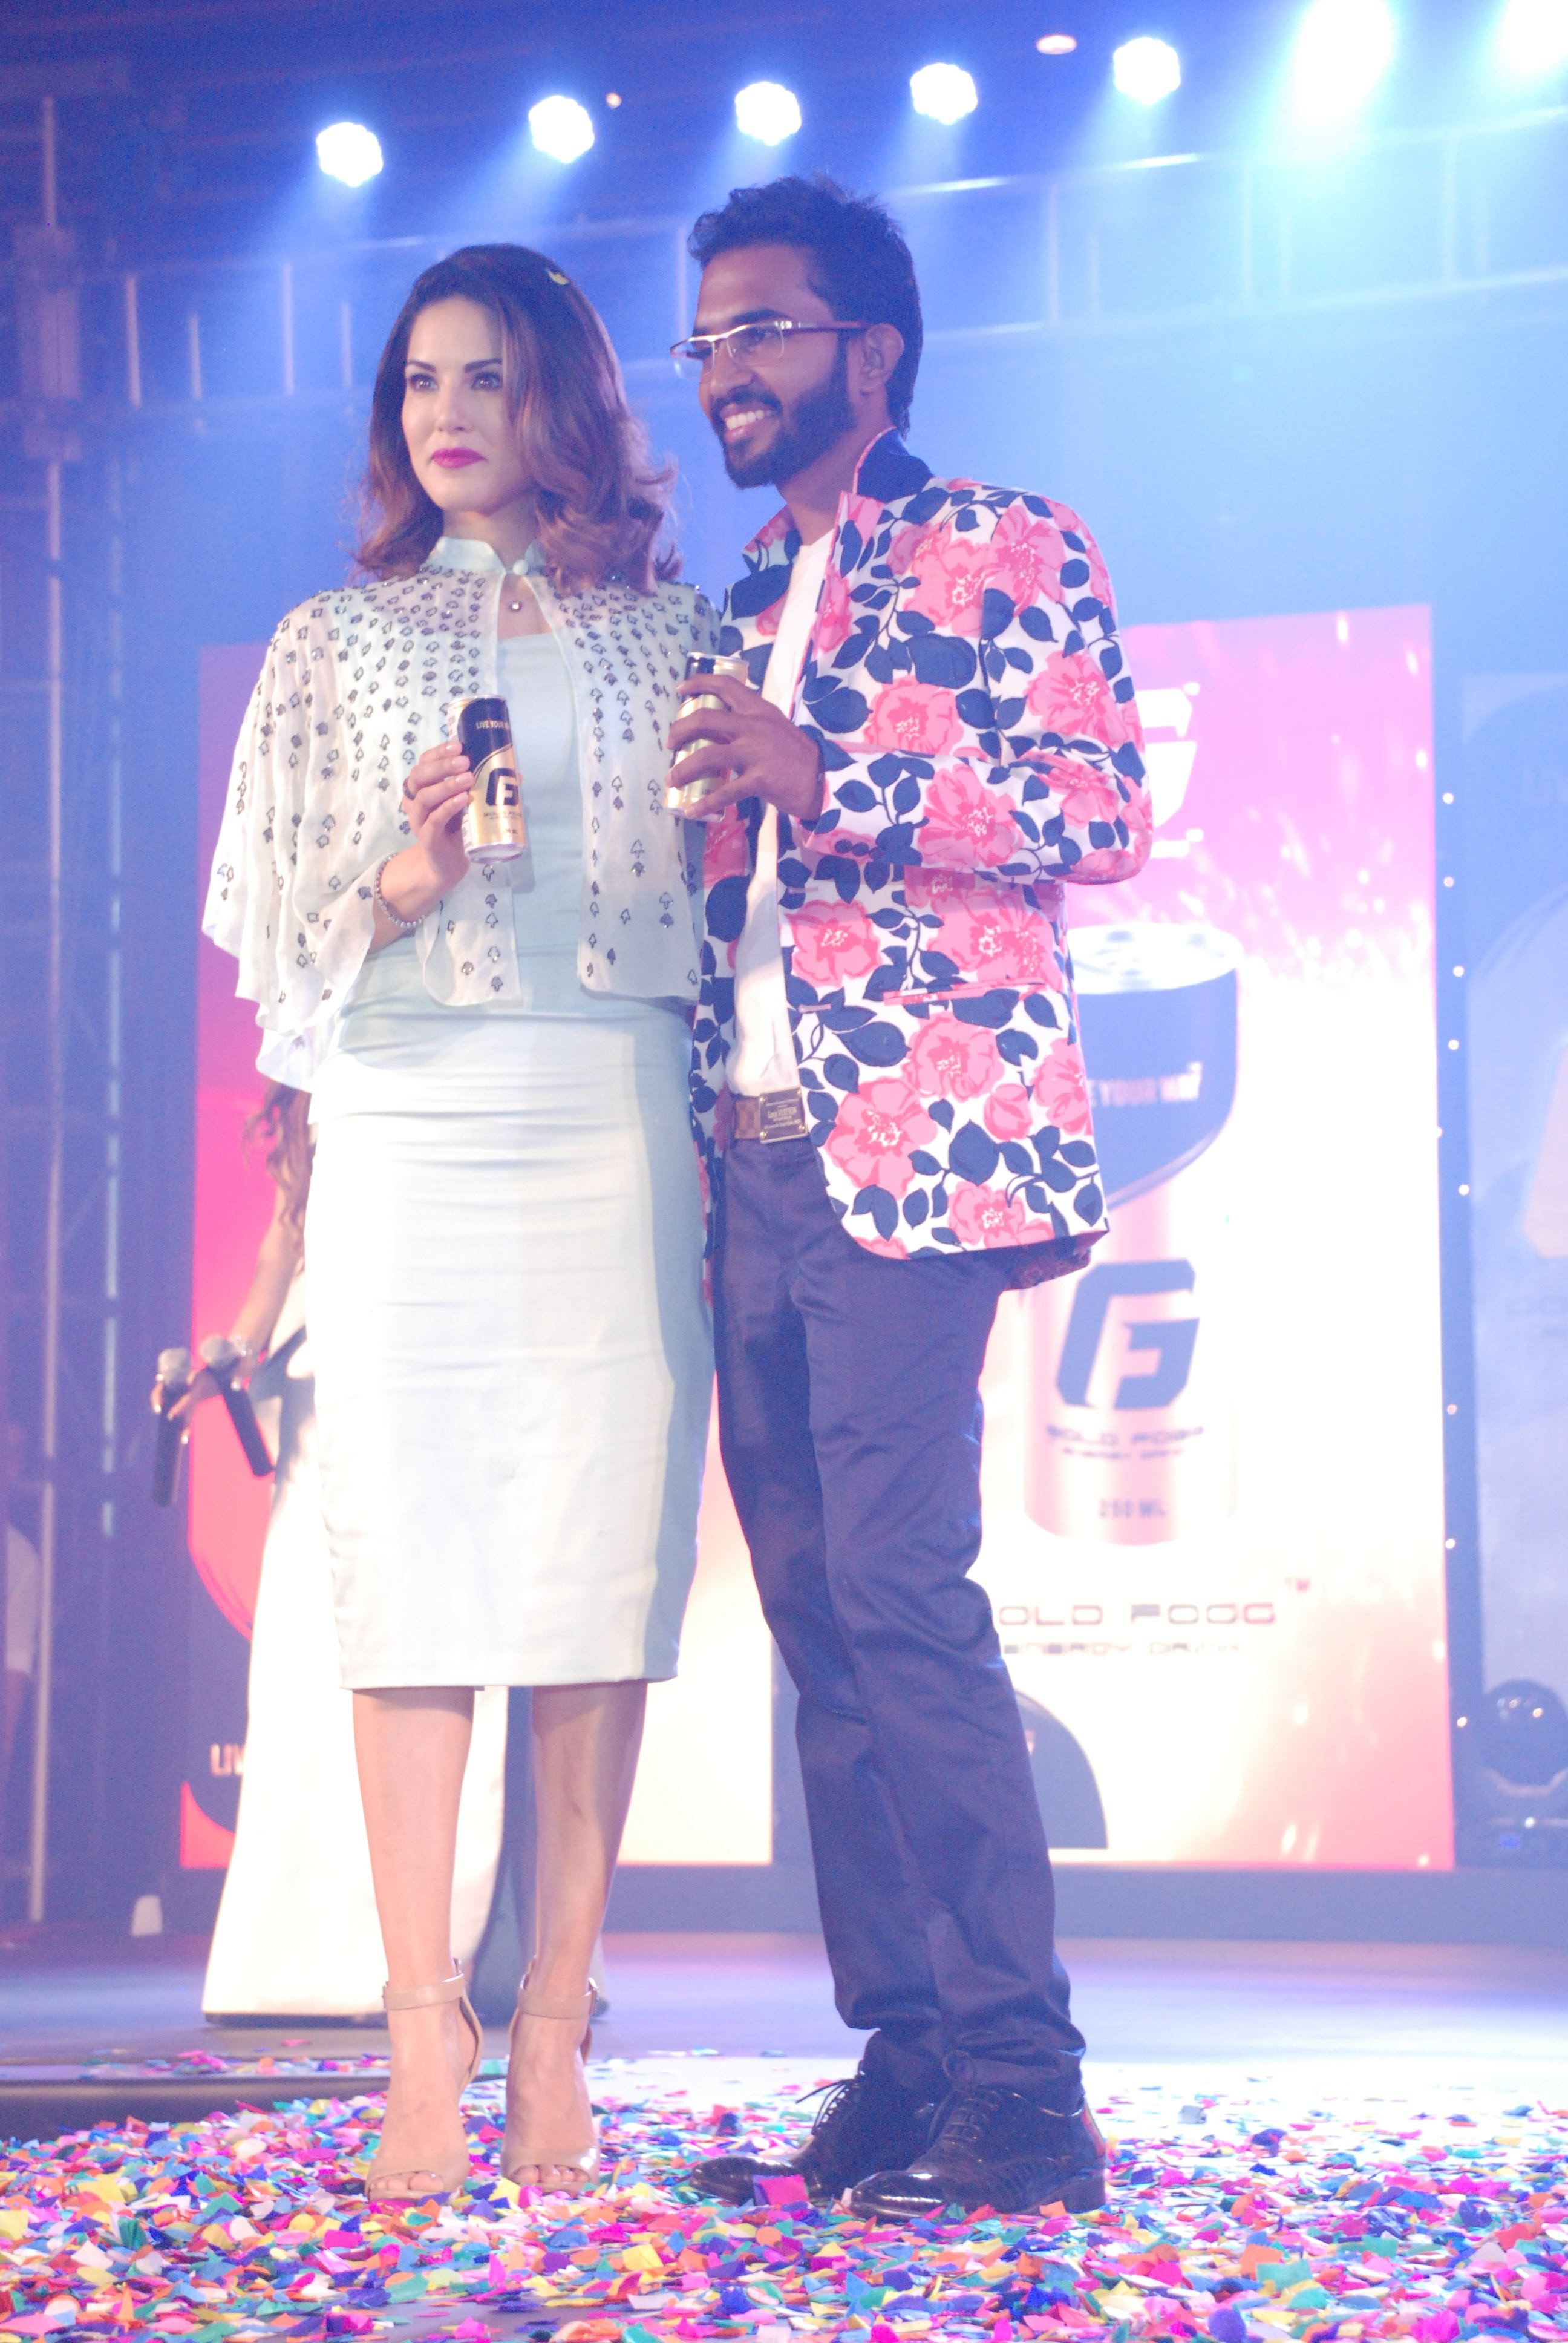 Bollywood actress Sunny Leone seen with Rahul Vinayika, MD of RZ International Pvt Ltd during the launch of Gold Fogg, an energy drink in Bengaluru on Sunday 3